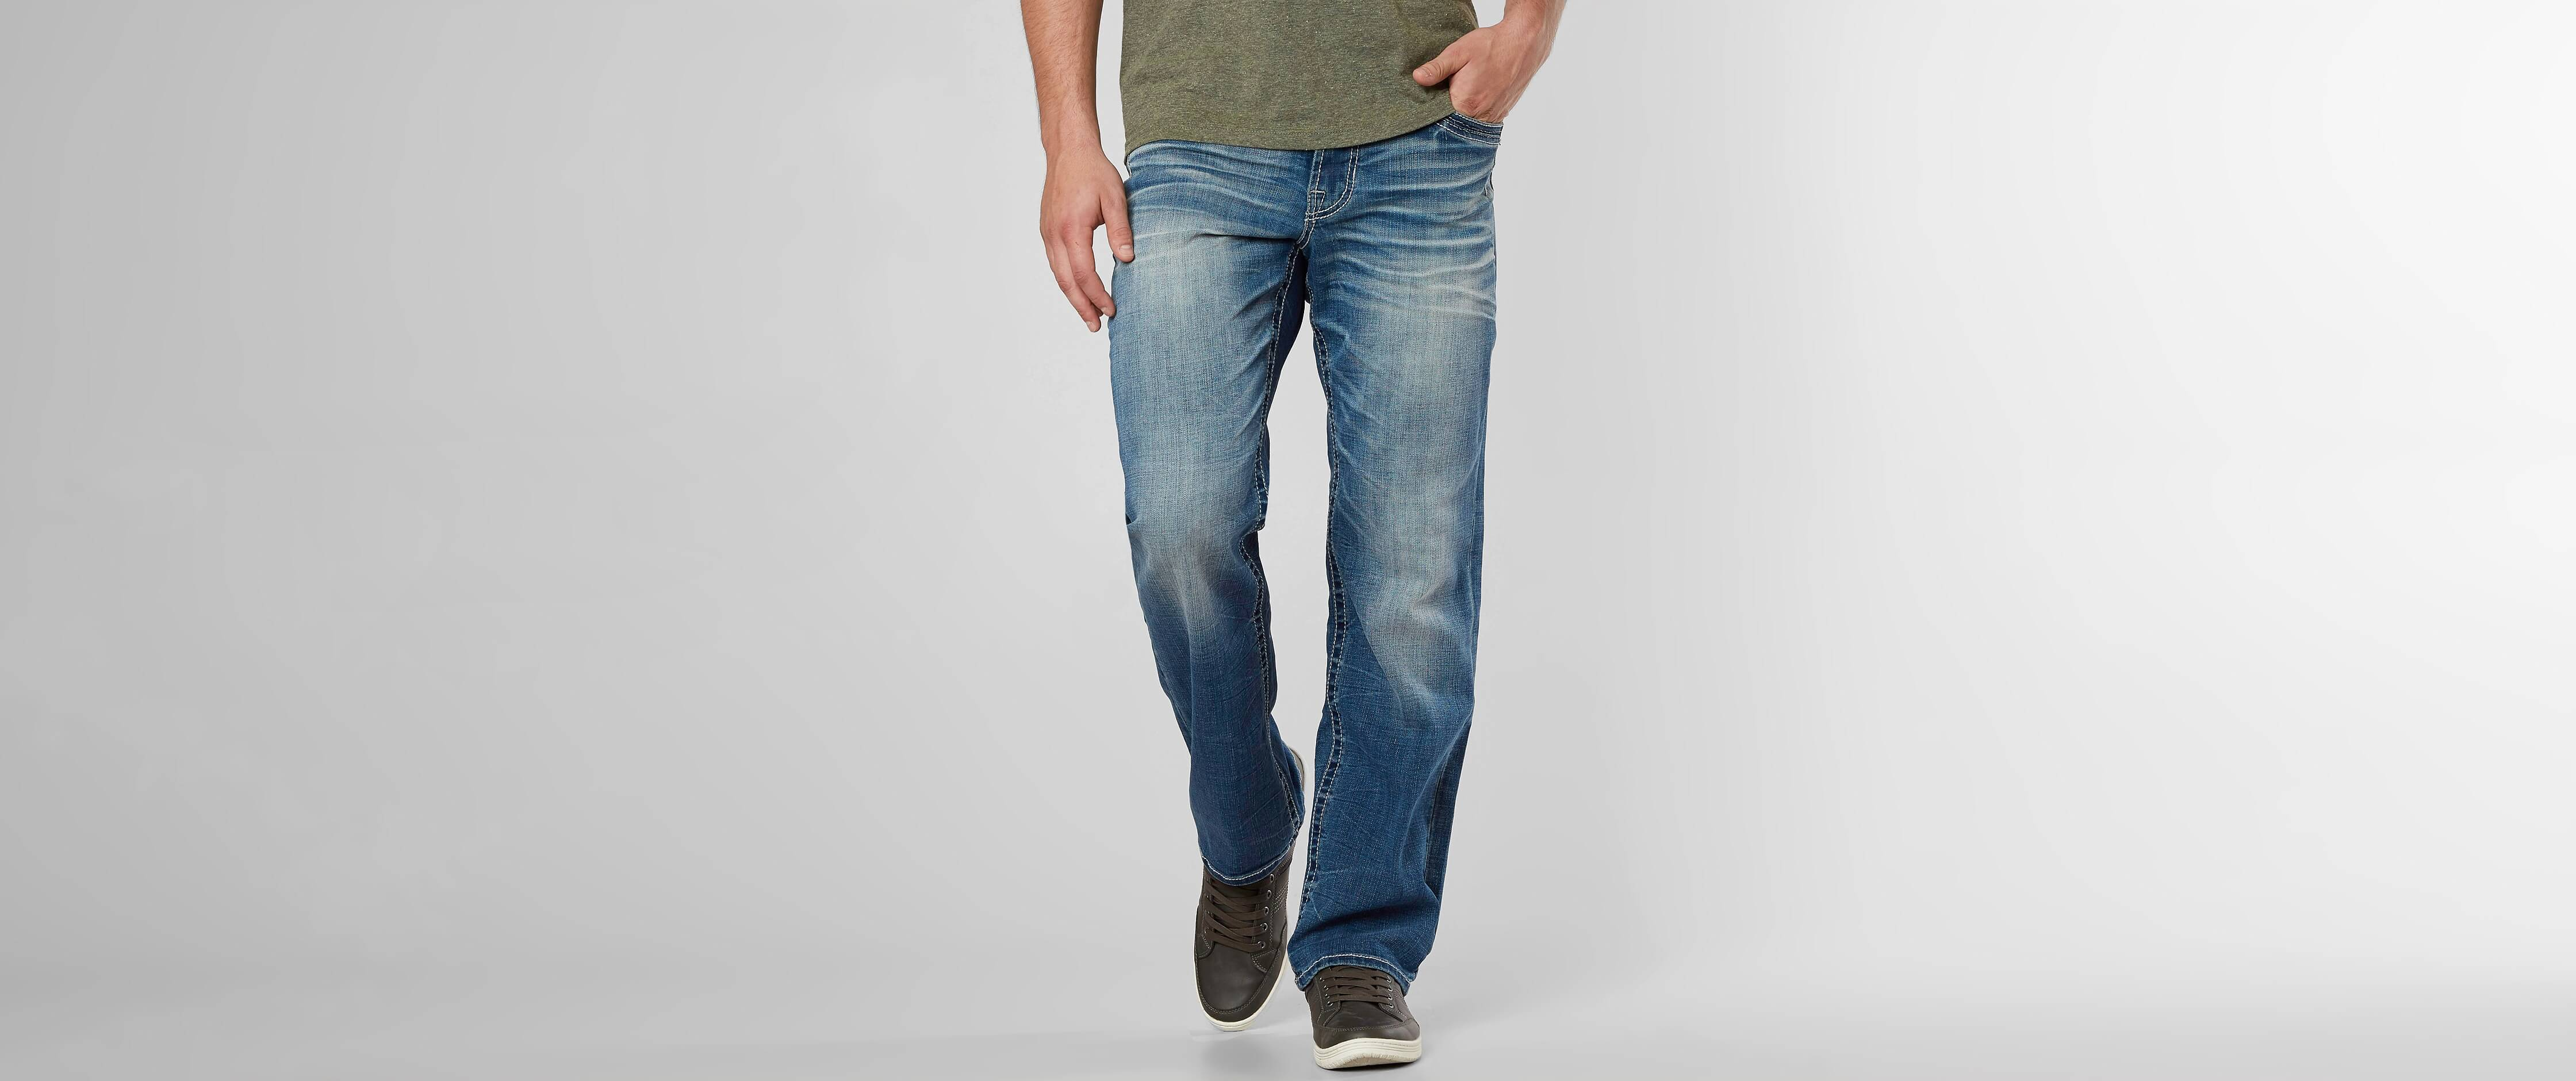 86258702 Jeans at Buckle , Norfolk | Tuggl - local retail stores online!